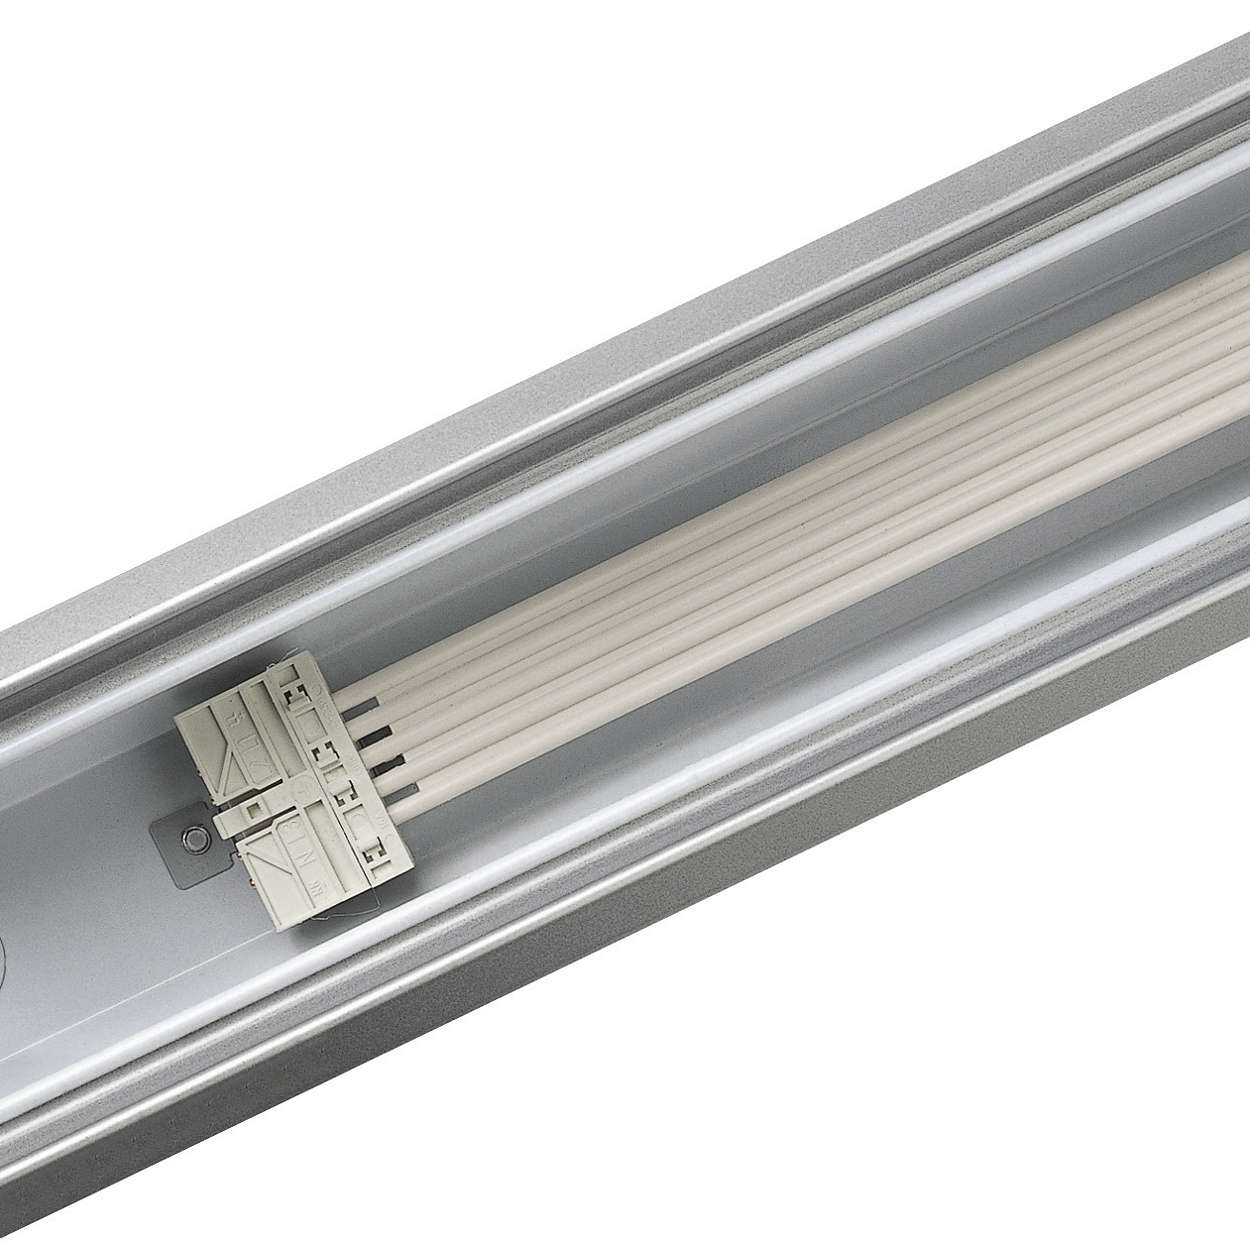 Maxos LED panel – efficiently directing light where it is needed